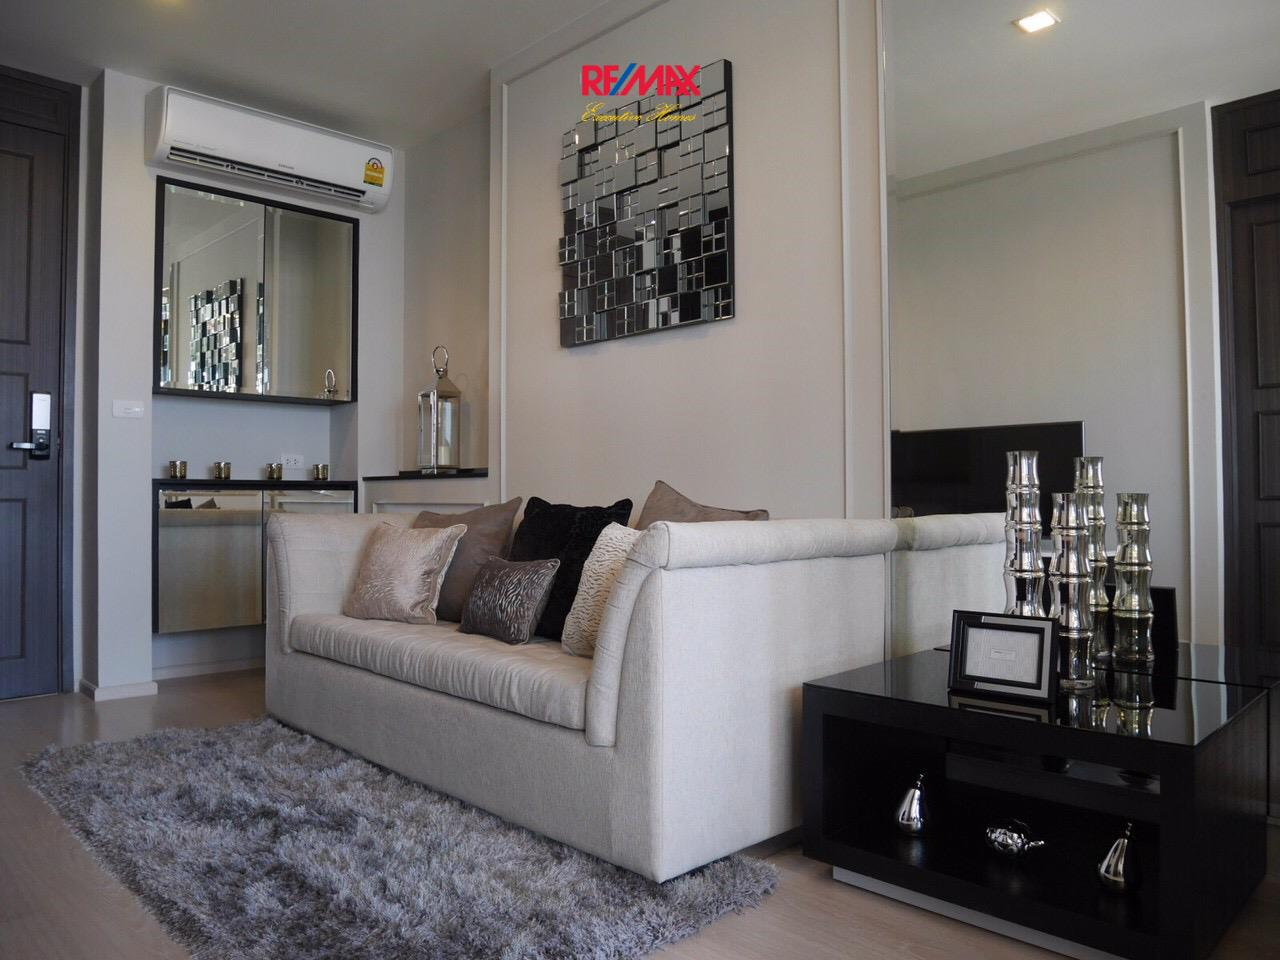 RE/MAX Executive Homes Agency's Lovely 1 Bedroom for Rent Rhythm 44/1 1